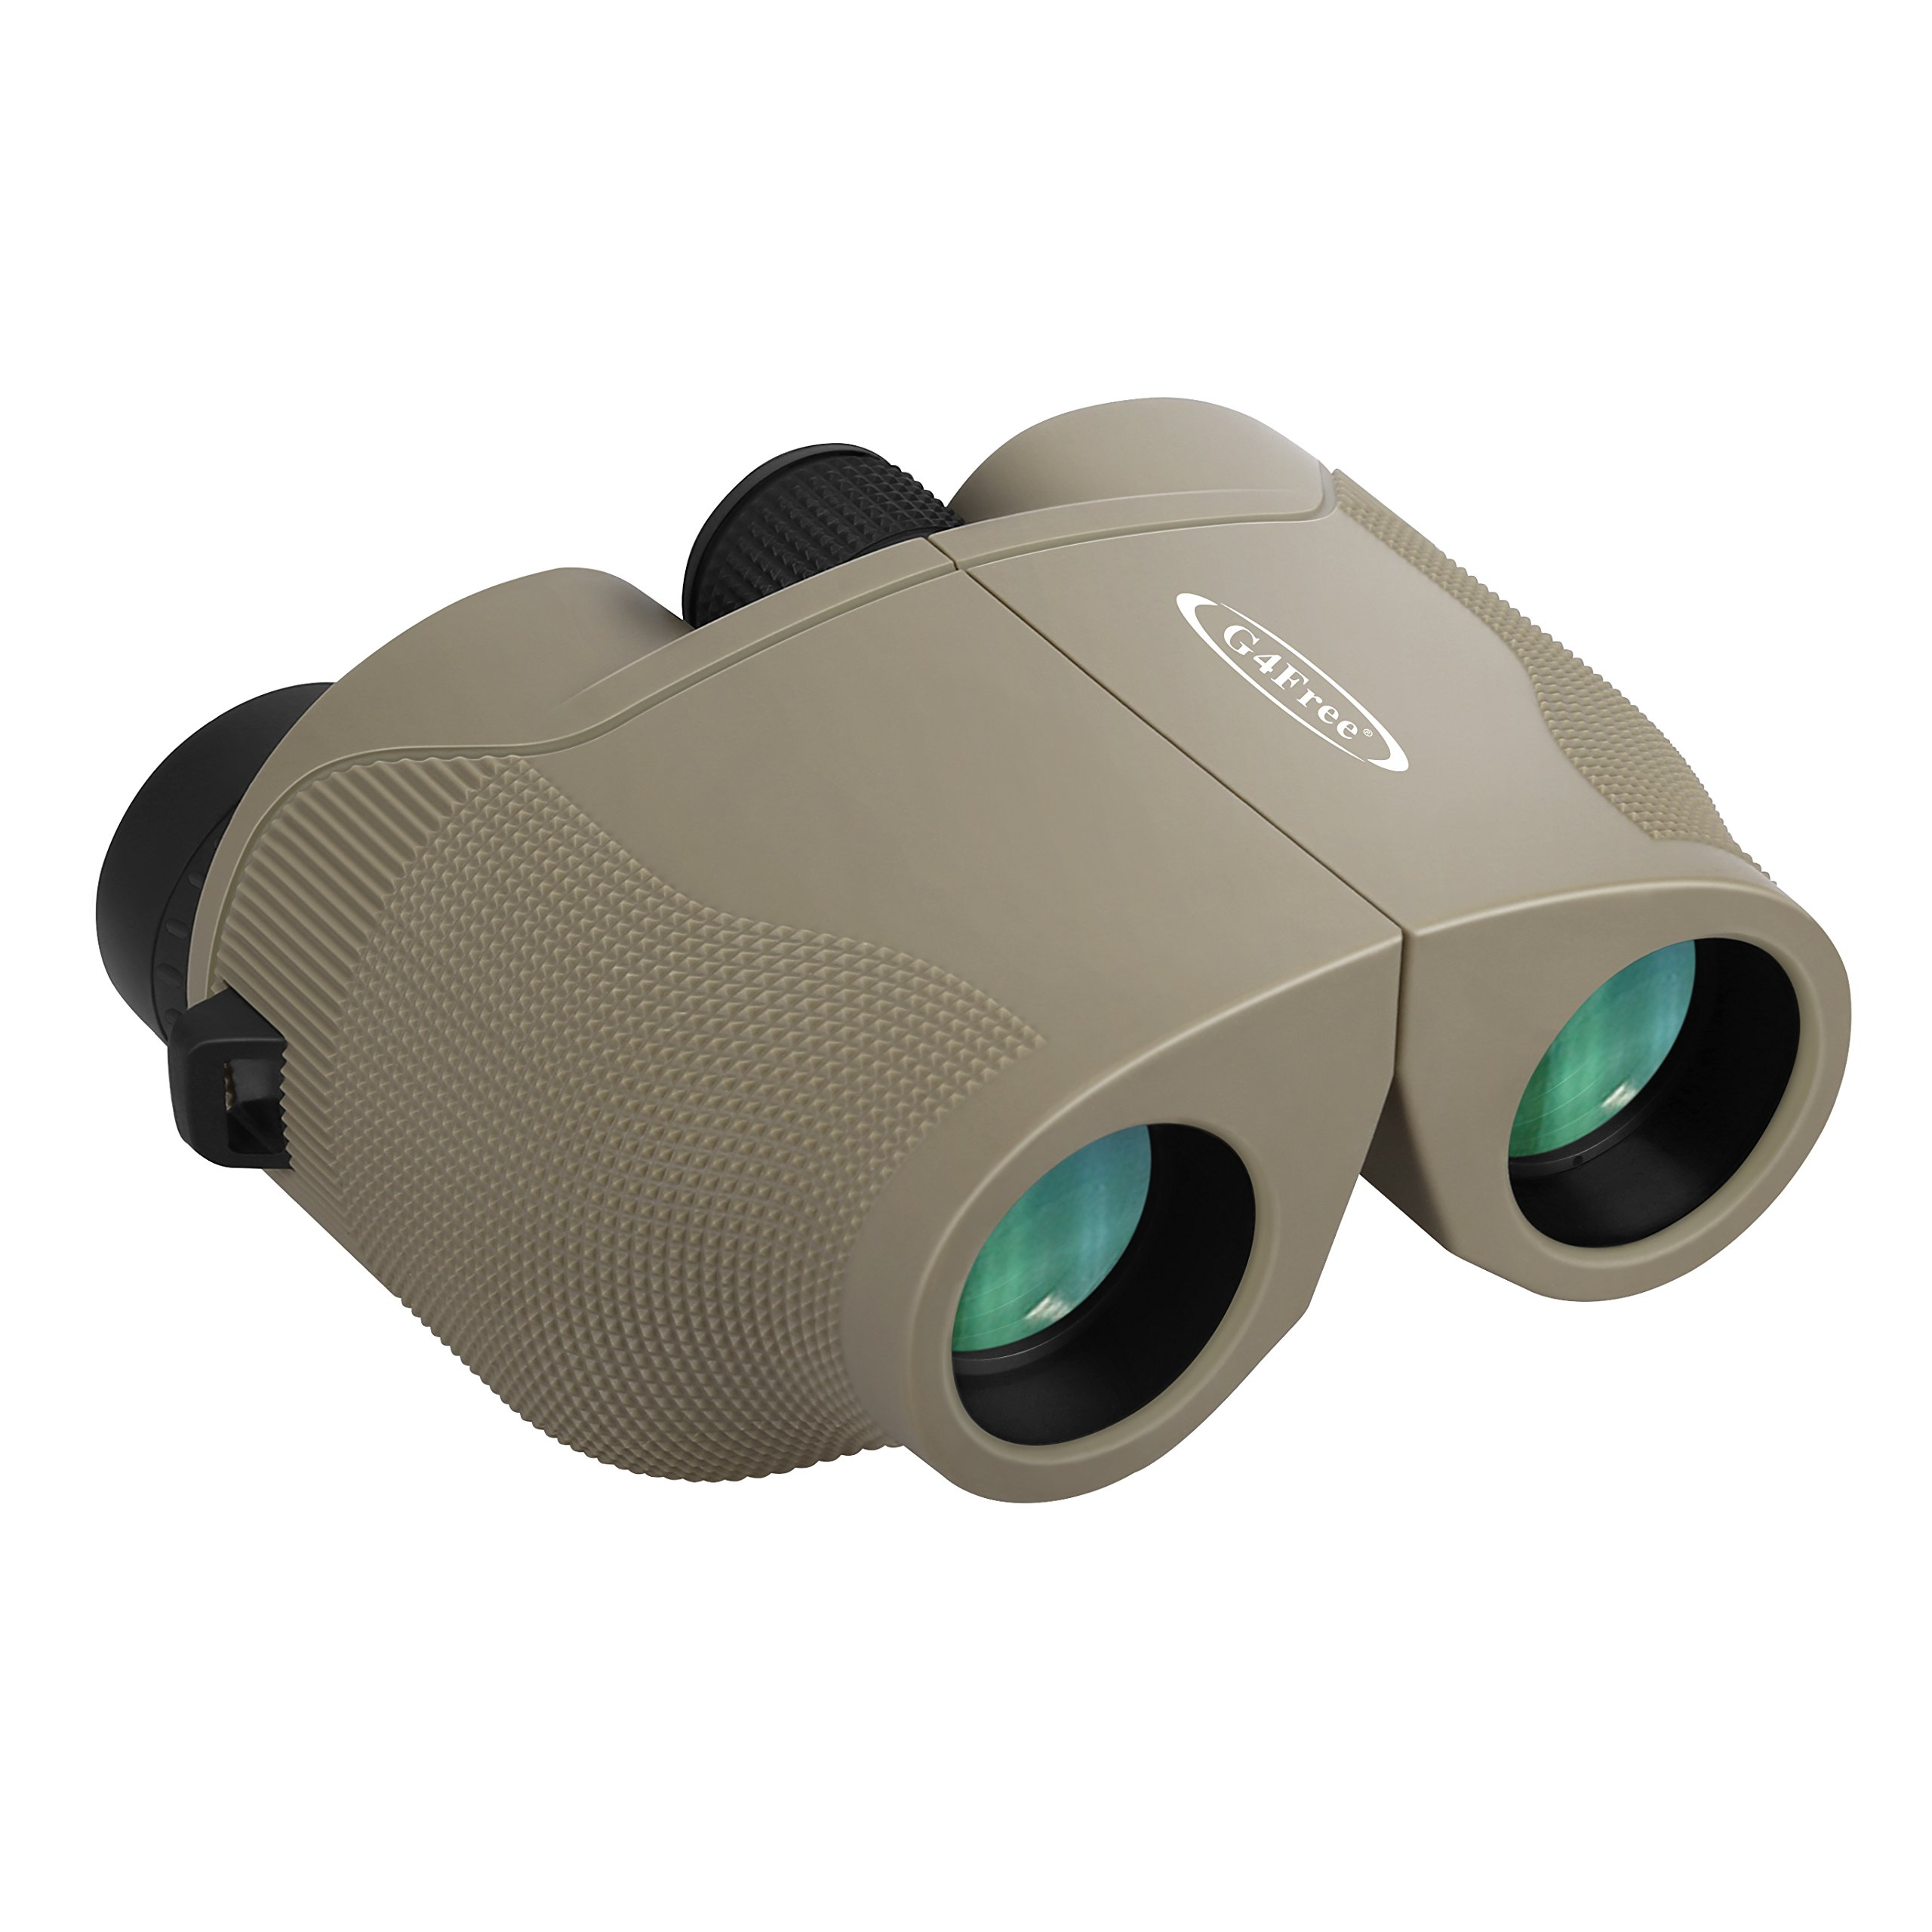 G4Free 10x25 Wide Angle Binoculars Compact BAK4 Weak Light Night Vision Binocular High Powered with Clear Vision Great for Bird Watching Outdoor Sports Games and Hunting(Sand) by G4Free